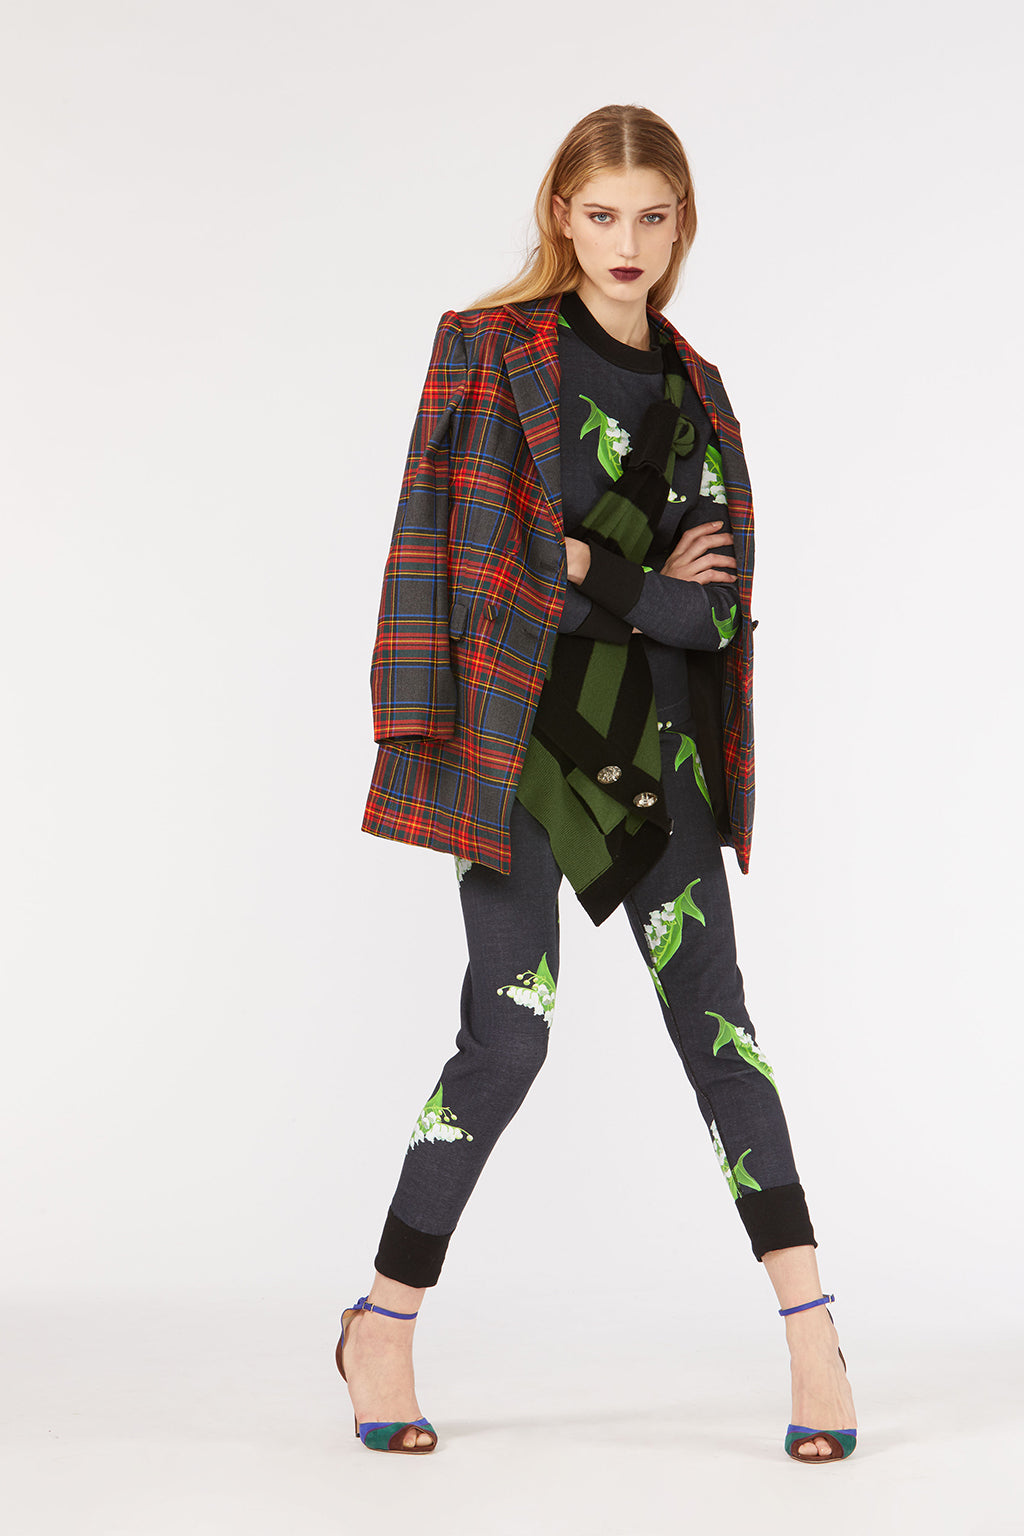 Cynthia Rowley Fall 2018 look 25 featuring lily of the valley printed leggings and sweatshirt, and plaid blazer.